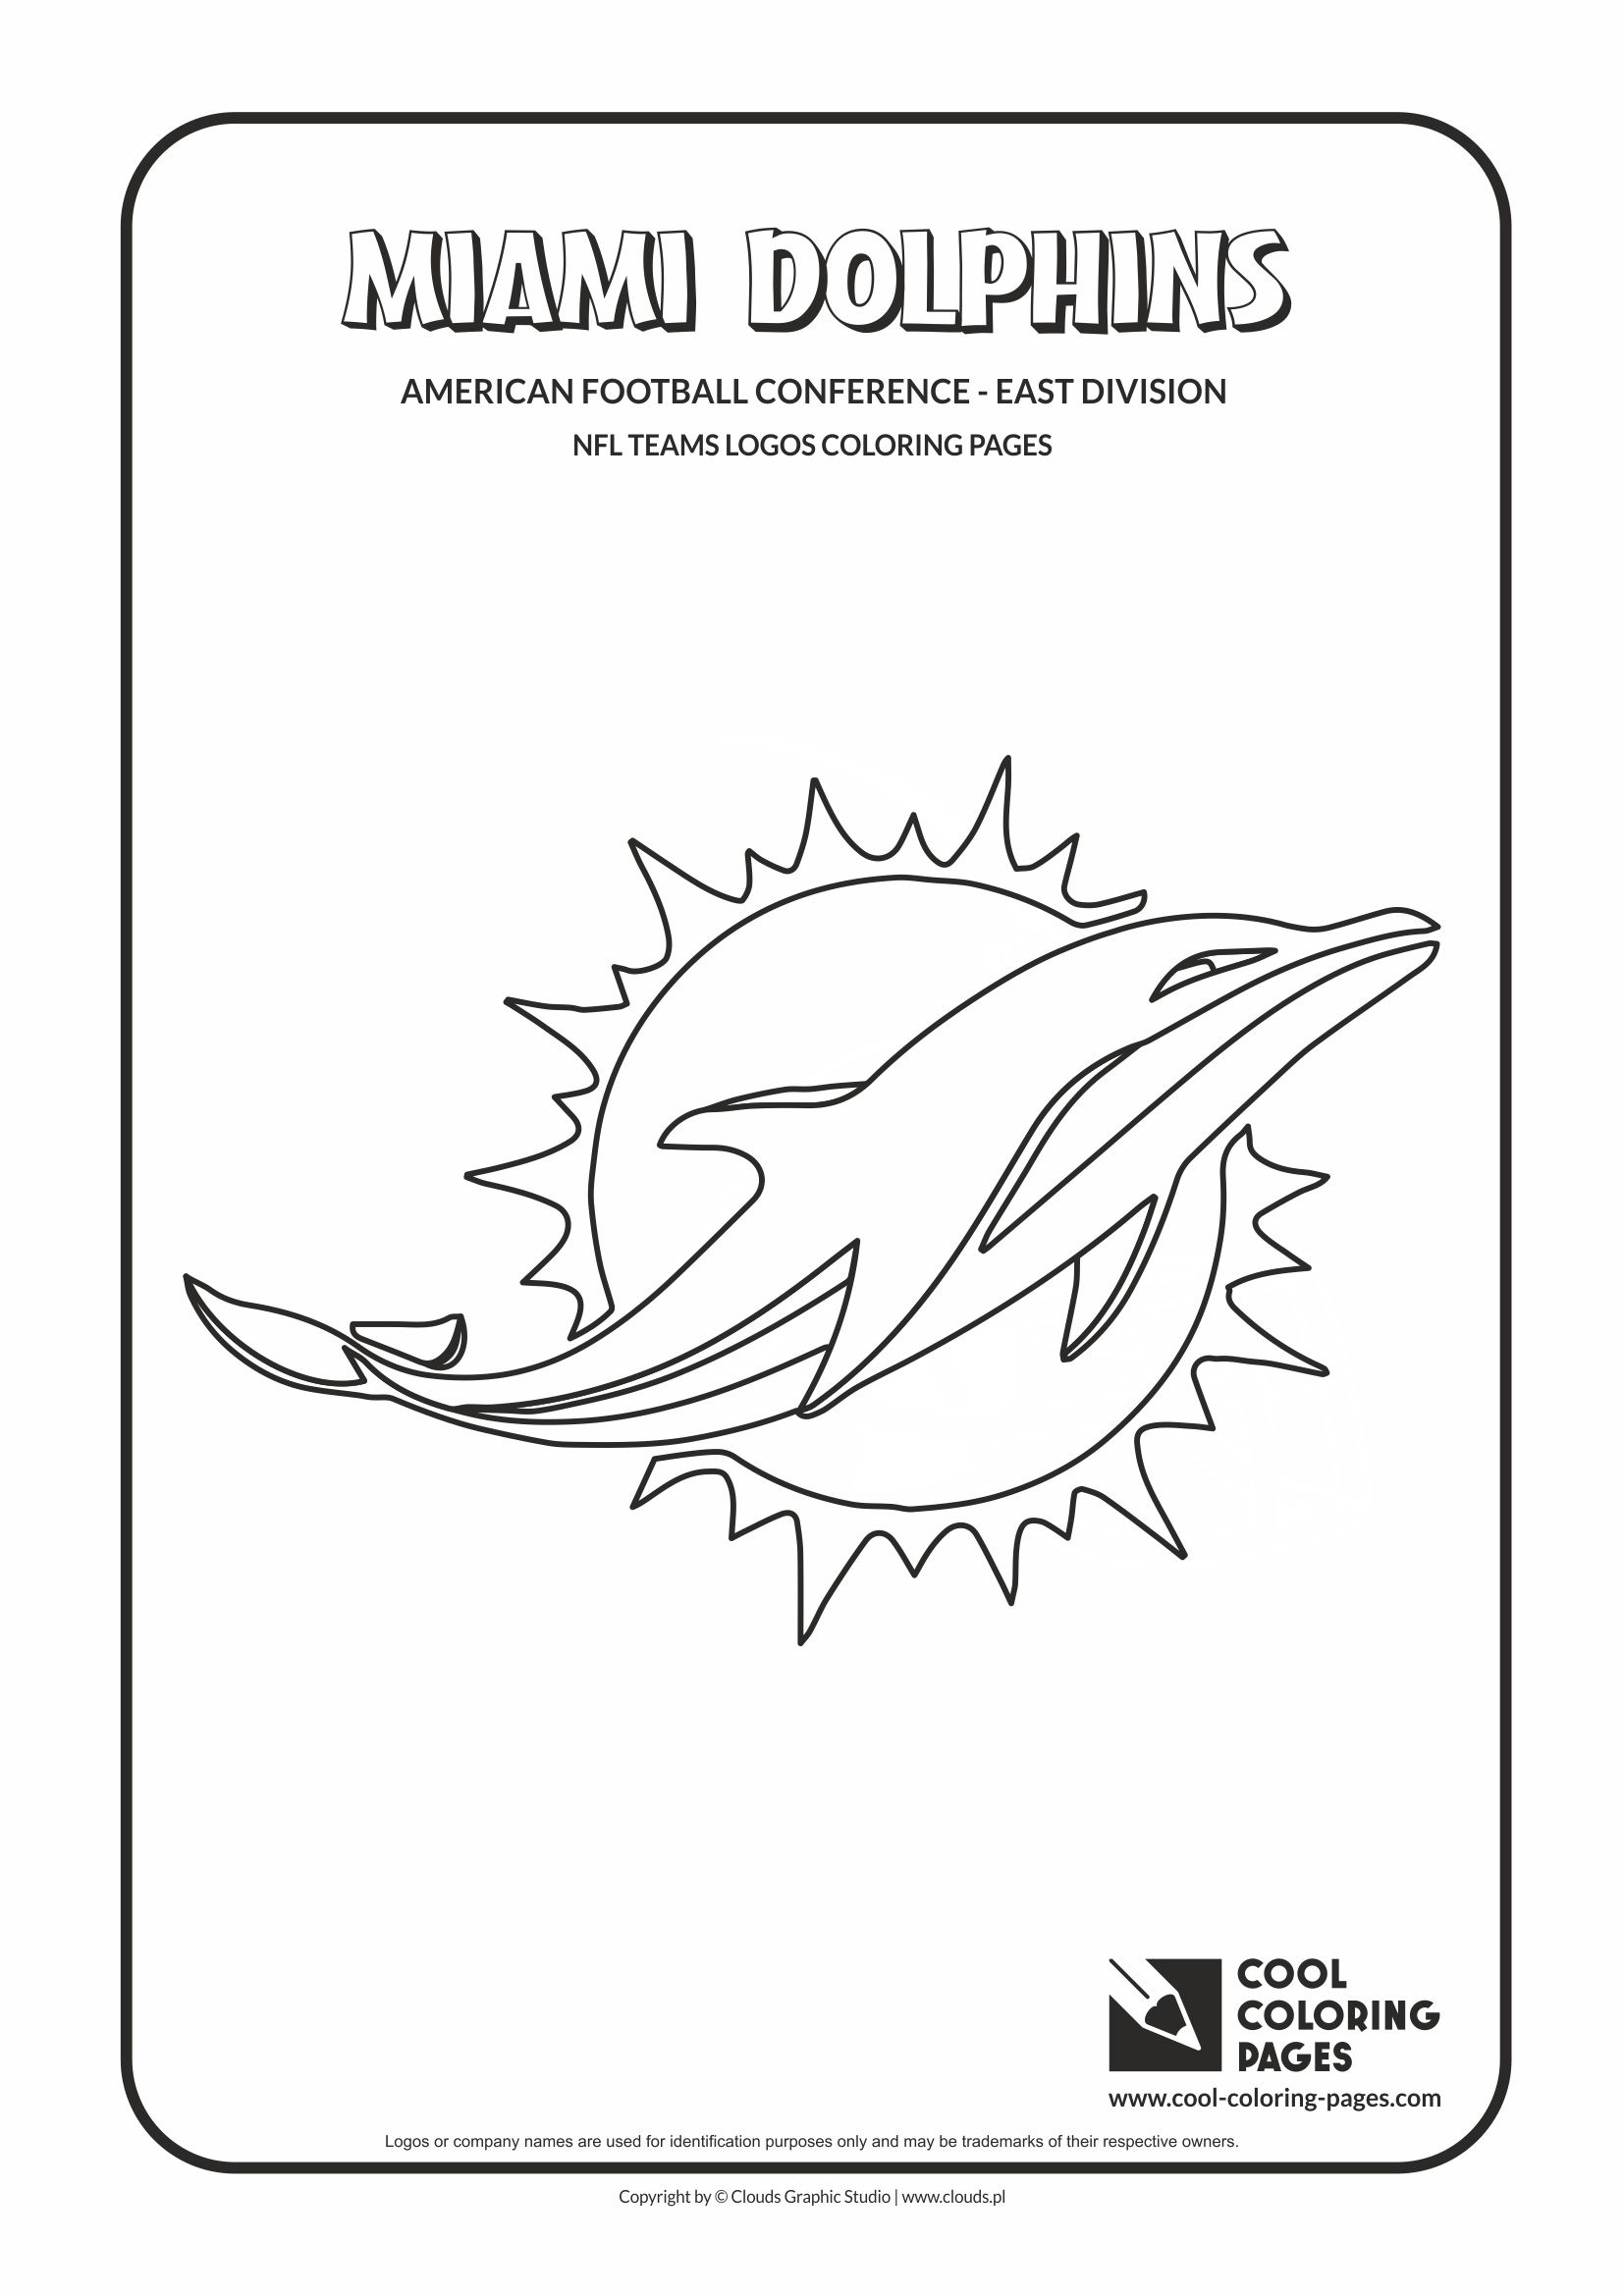 Iron Man Patriot Coloring Pages Vs By Sketchheavy Best Football